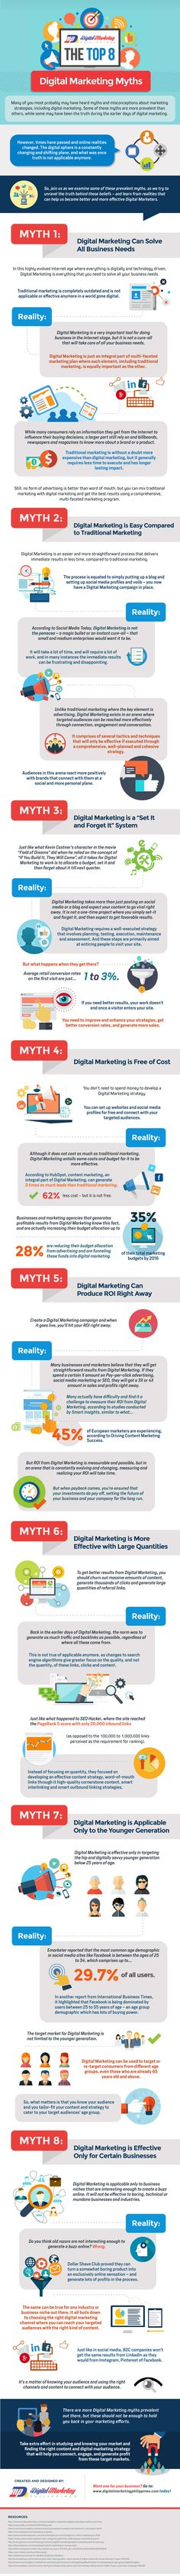 The Top 8 Digital Marketing Myths #webmarketing